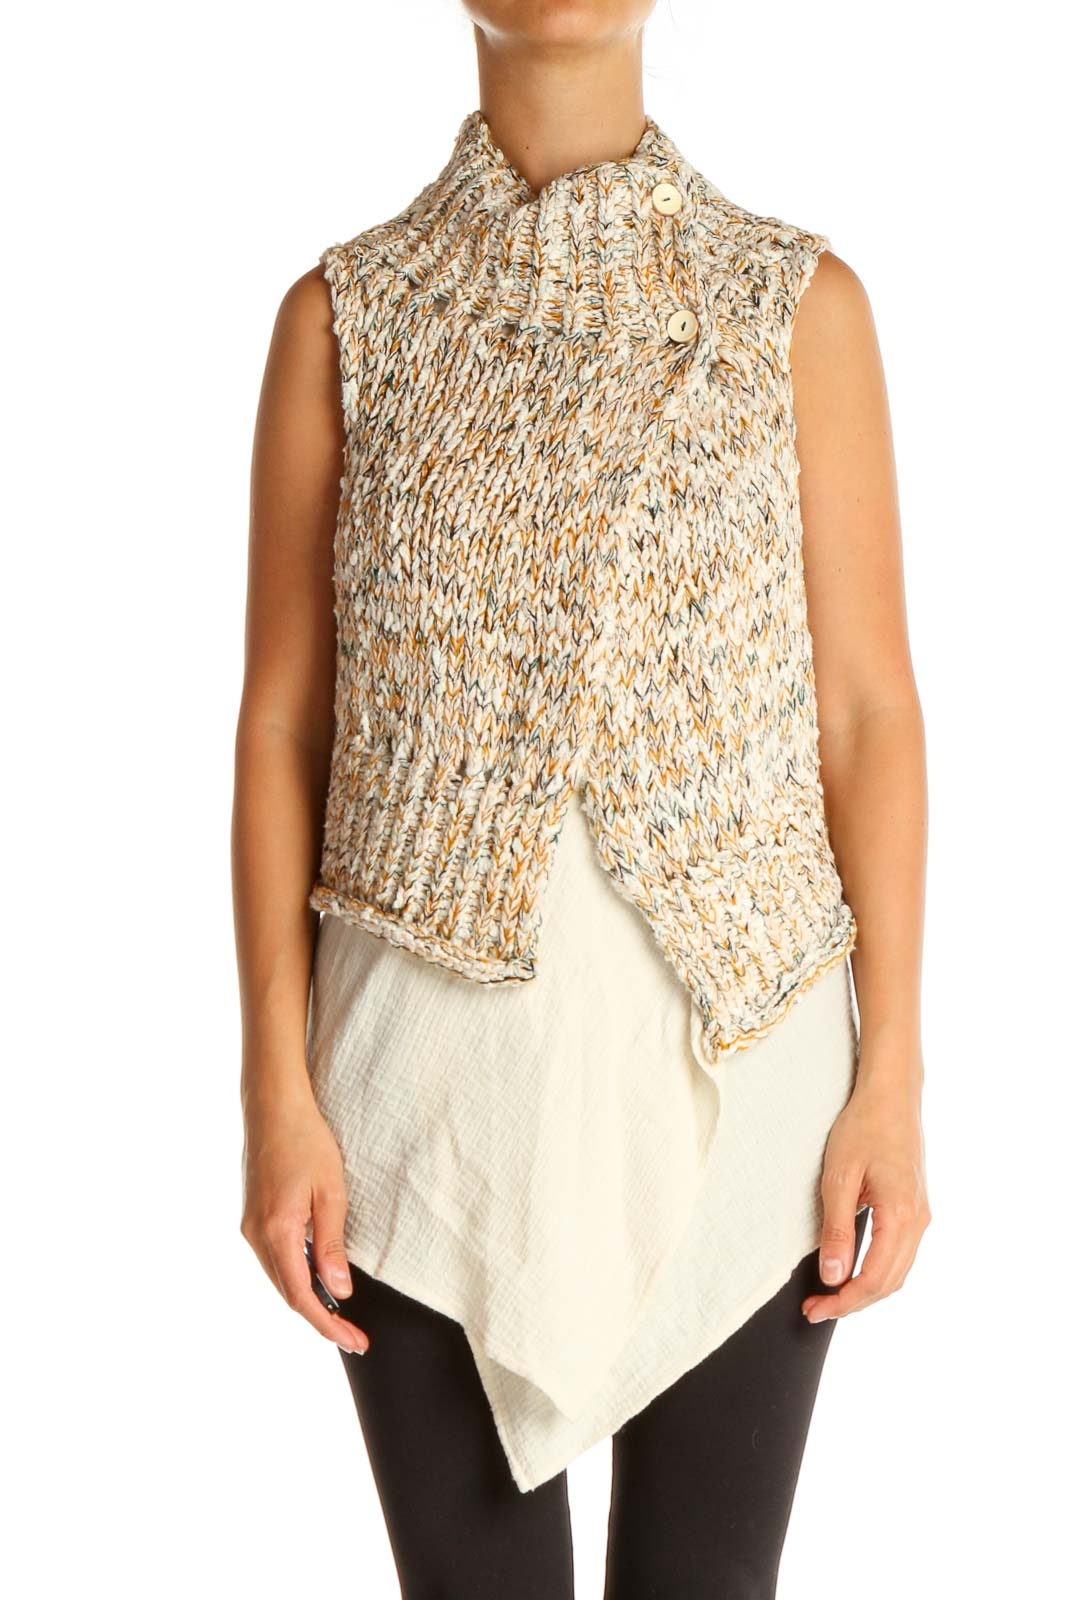 Beige Sweater Casual Top Front